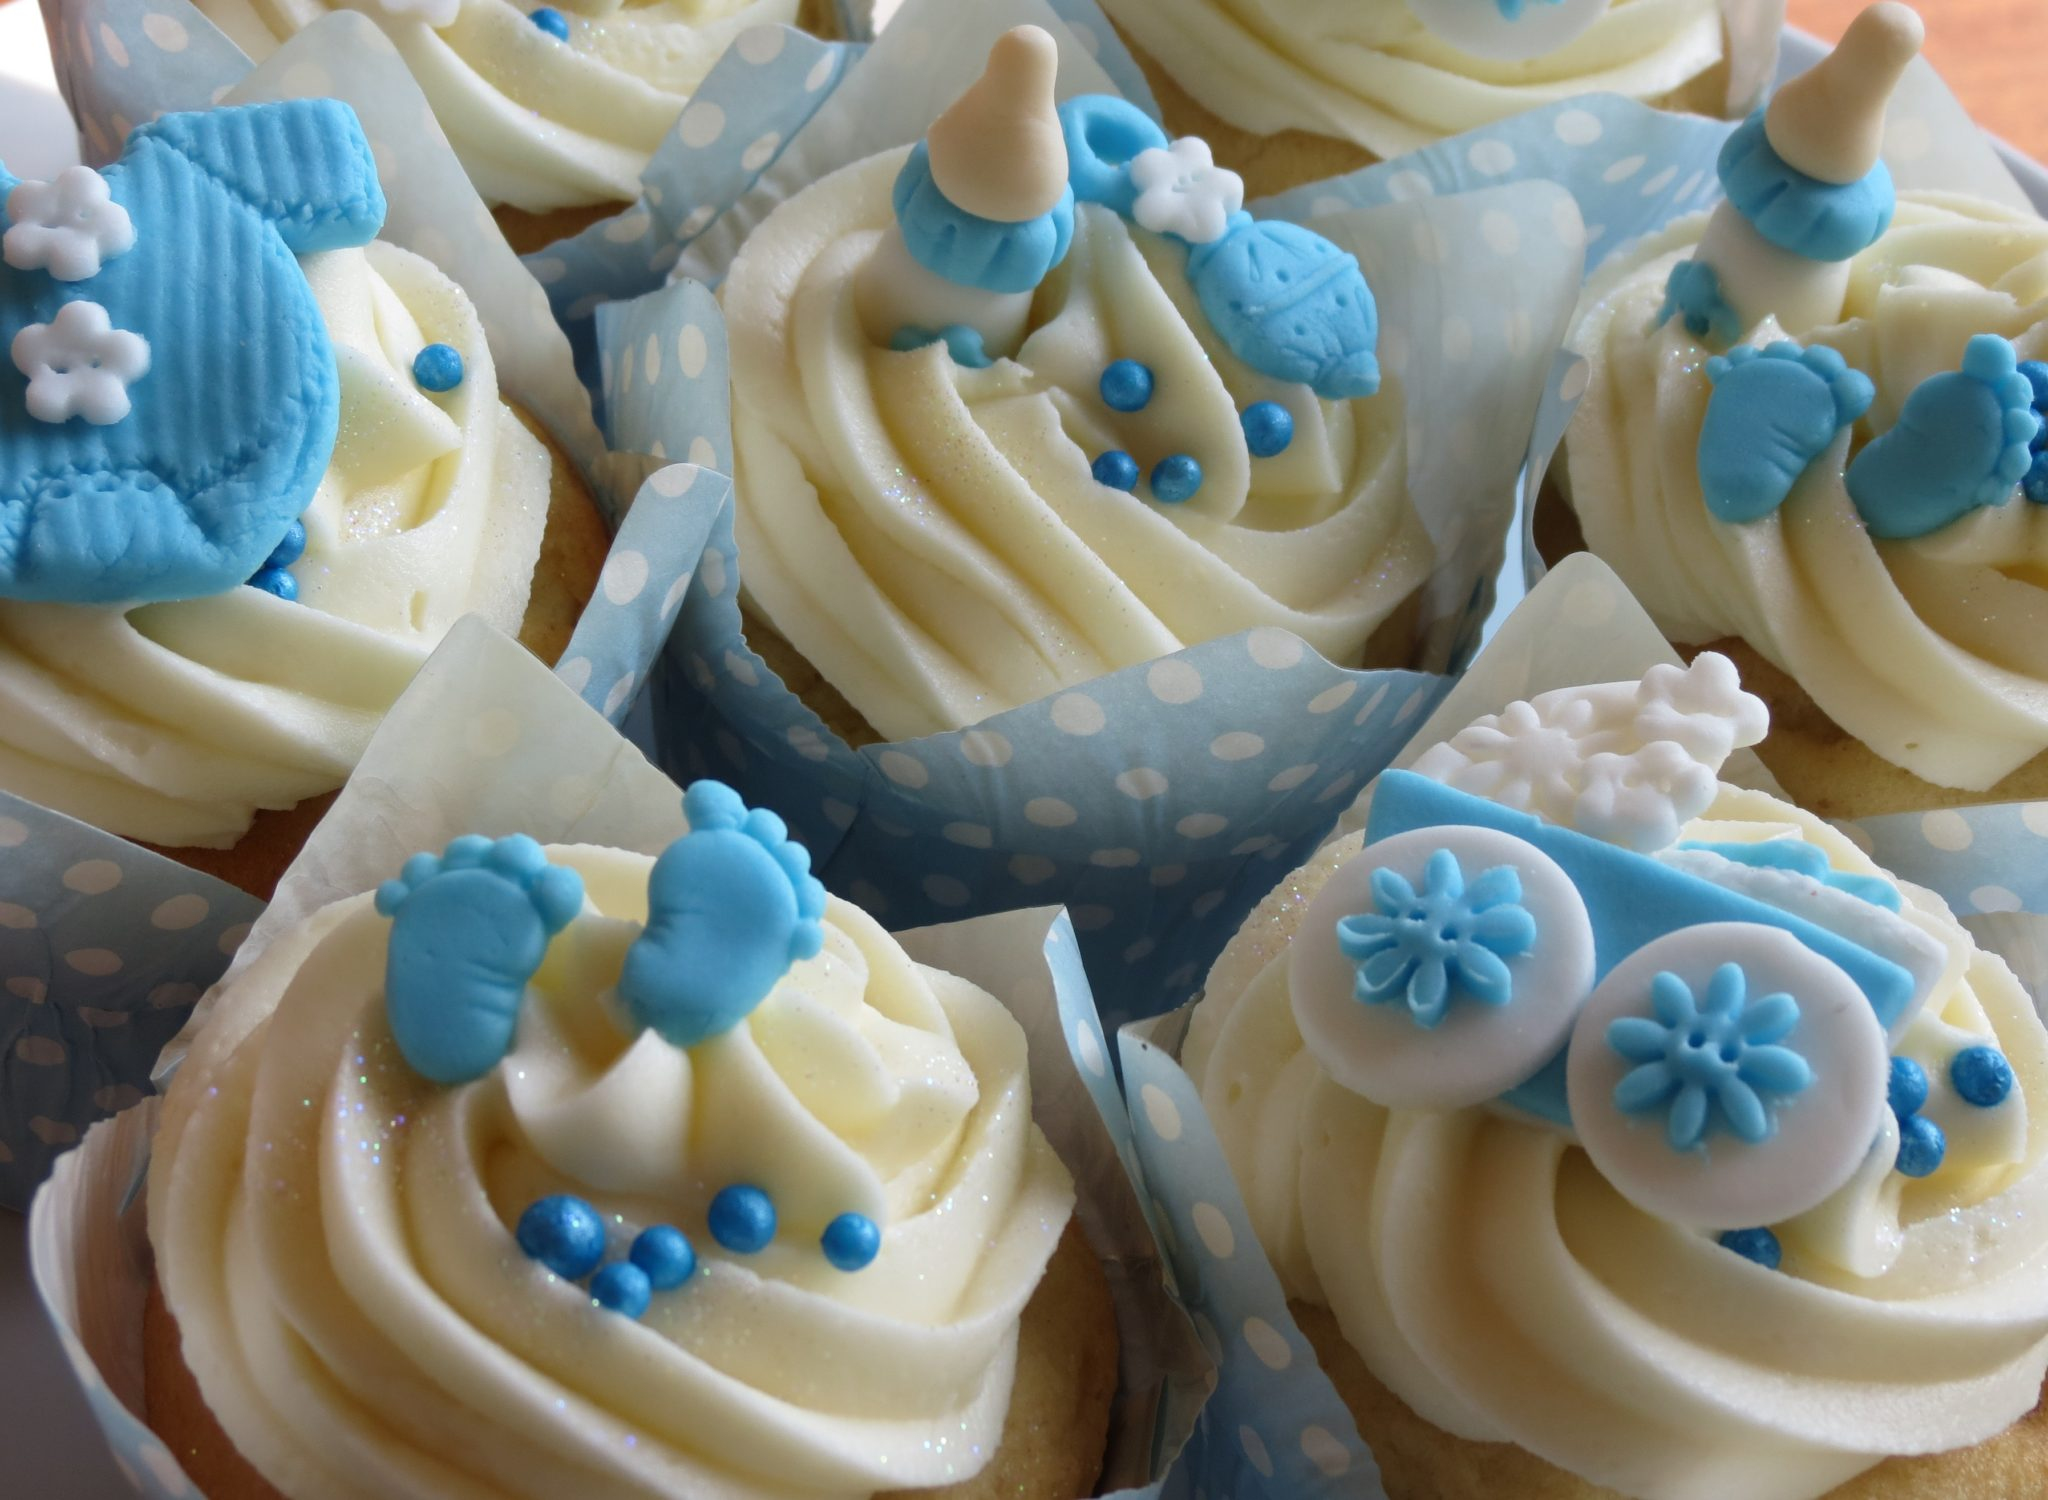 Baby Shower Cakes Cupcakes Pictures ~ Baby shower cakes and cupcakes ideas